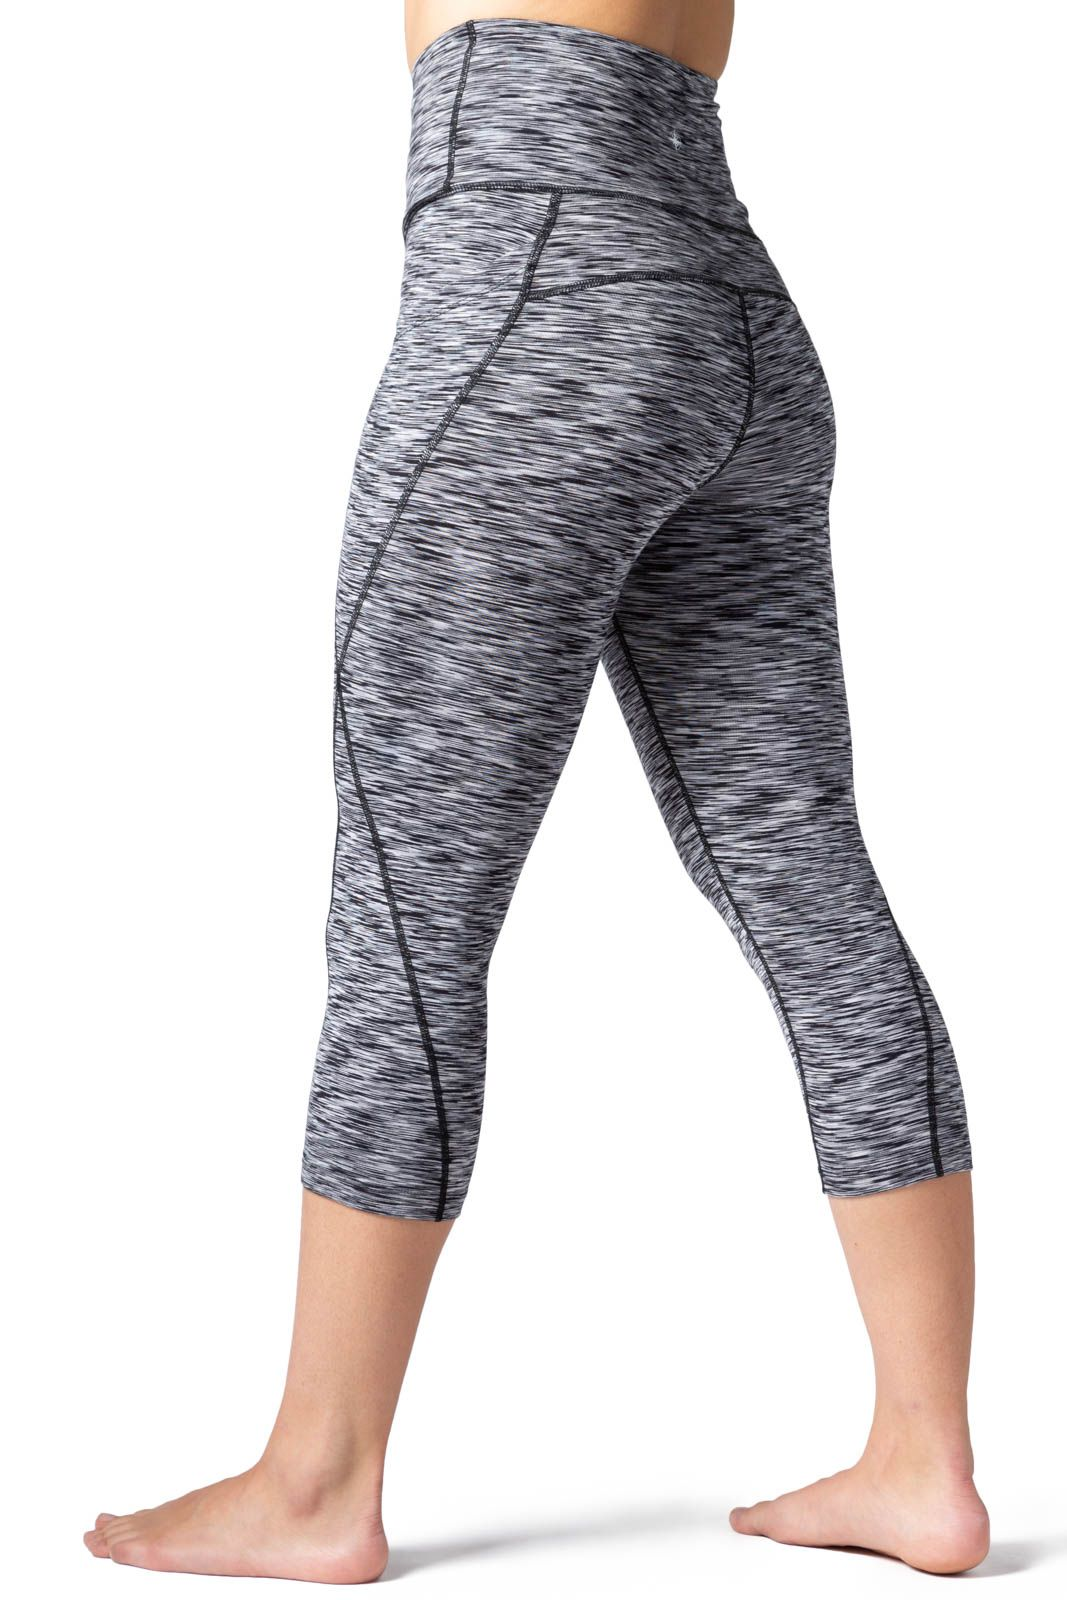 "Women's EcoFabric™ Active 18"" Workout Capri - Fishers Finery"